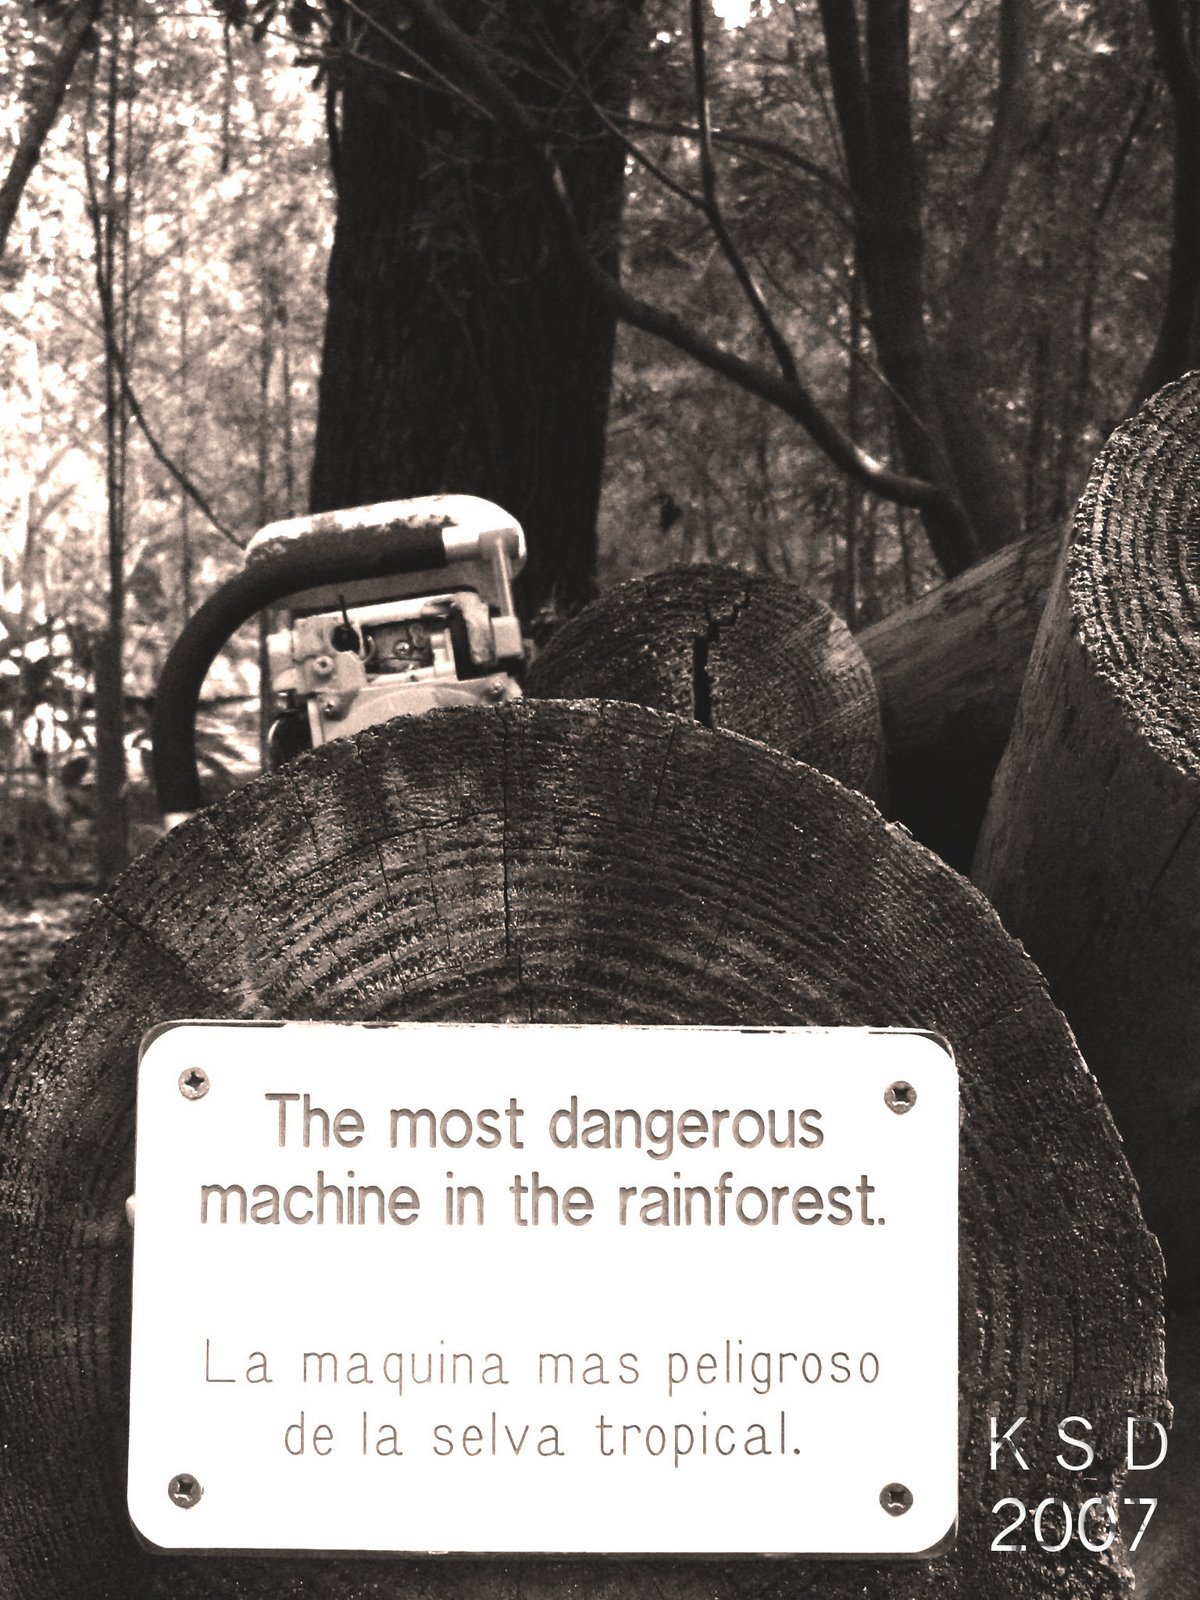 [dangerous+machine]